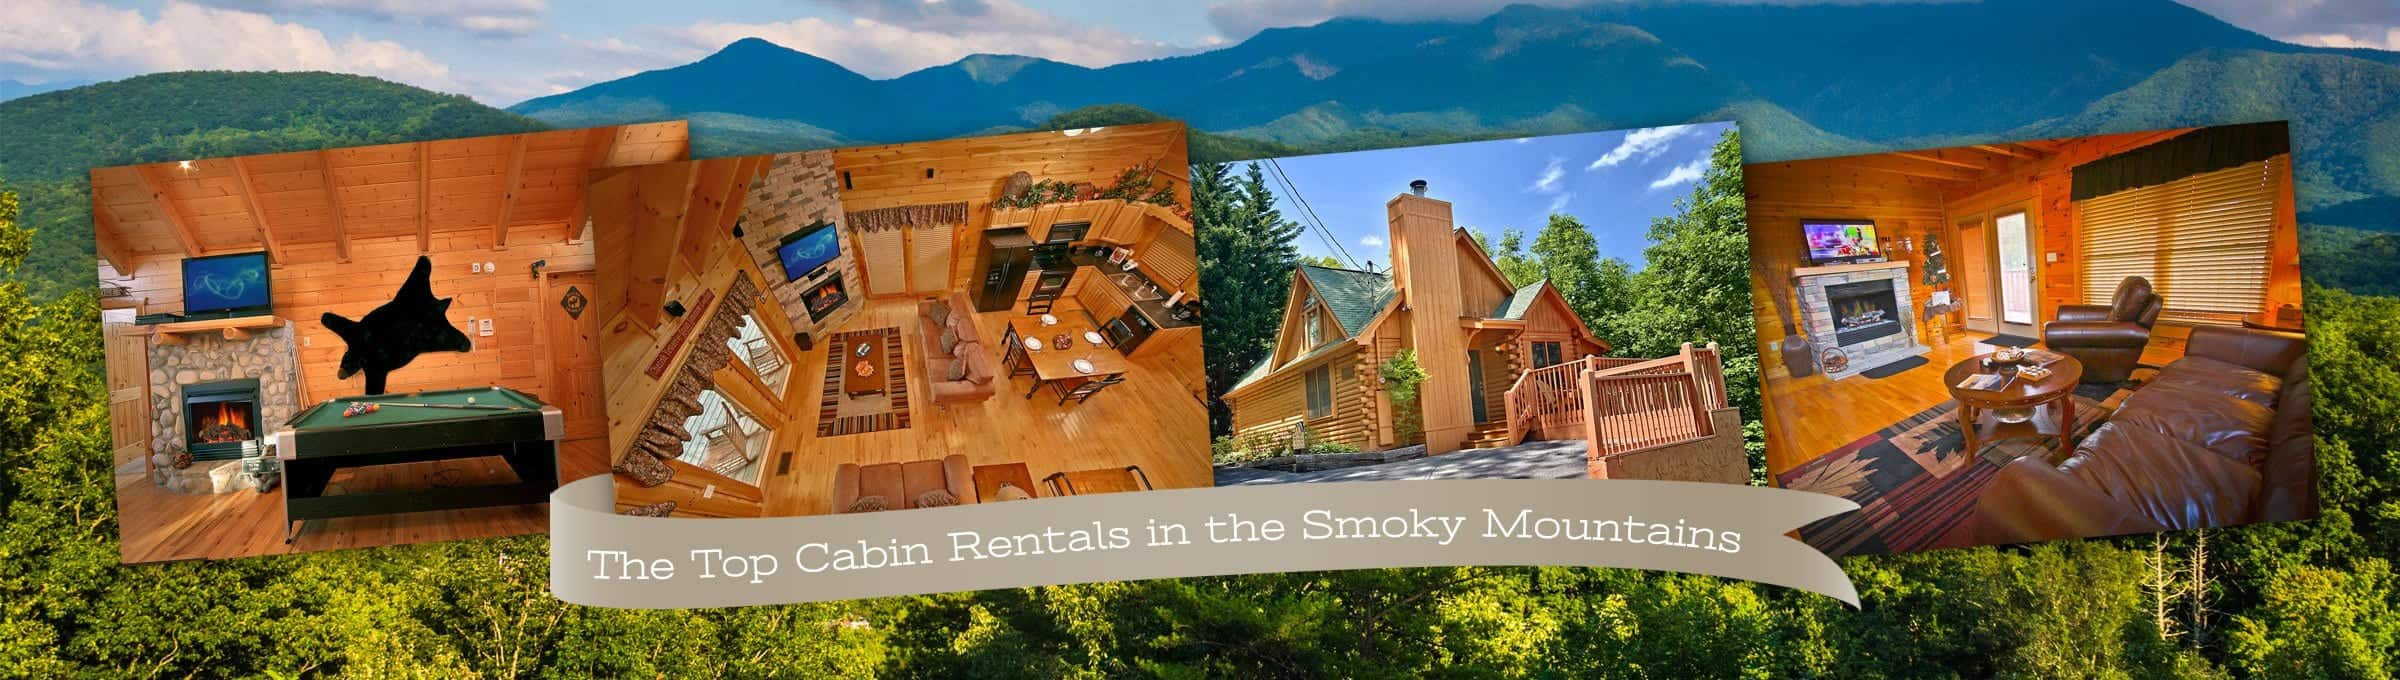 smokys cabin cherokee mountains city great vacation rentals and bryson vistas breathtaking smoky cabins